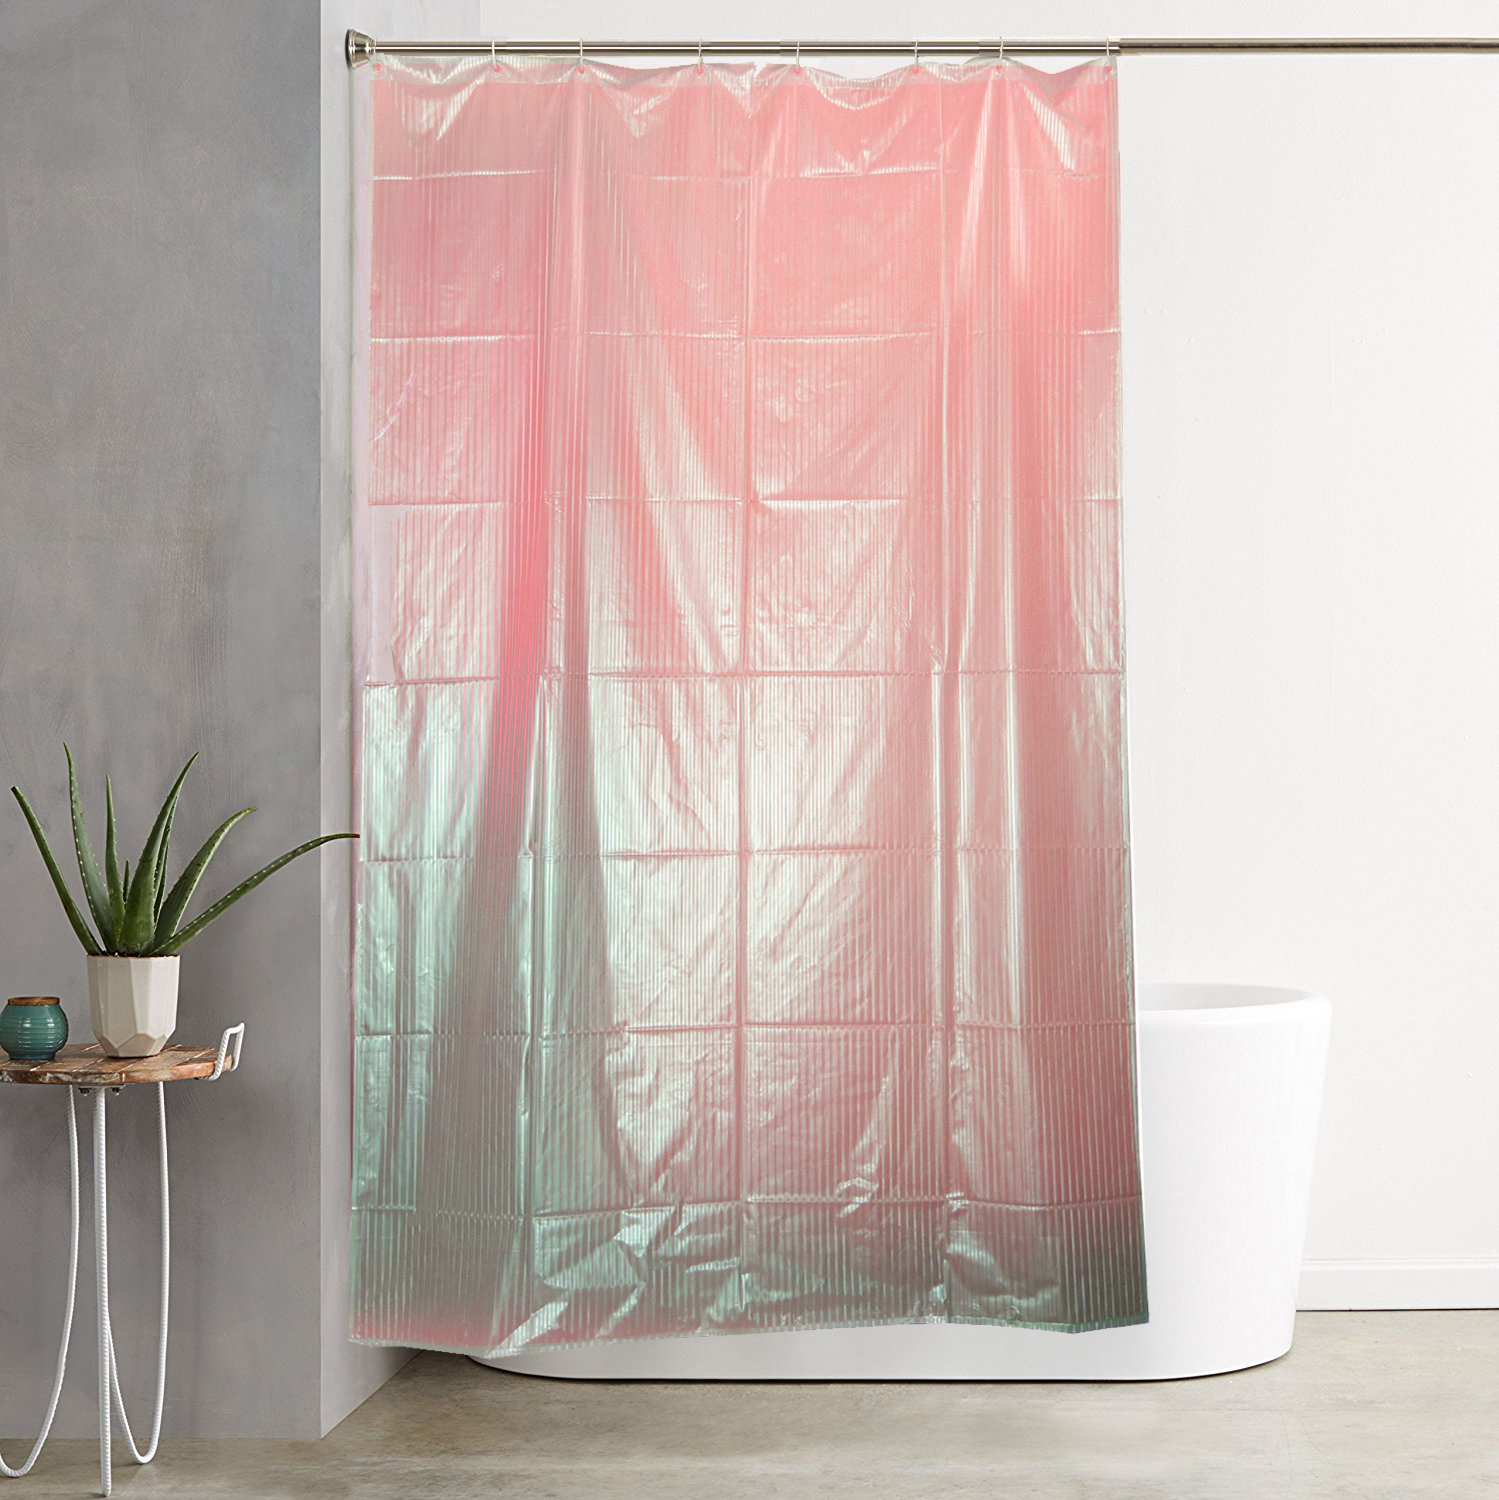 Kuber Industries™ Pink Self Design PVC Premium Shower Curtain - 7 Feet -84*54 Inches Set of 2 Pcs- 8 Hooks (SHWCU038)